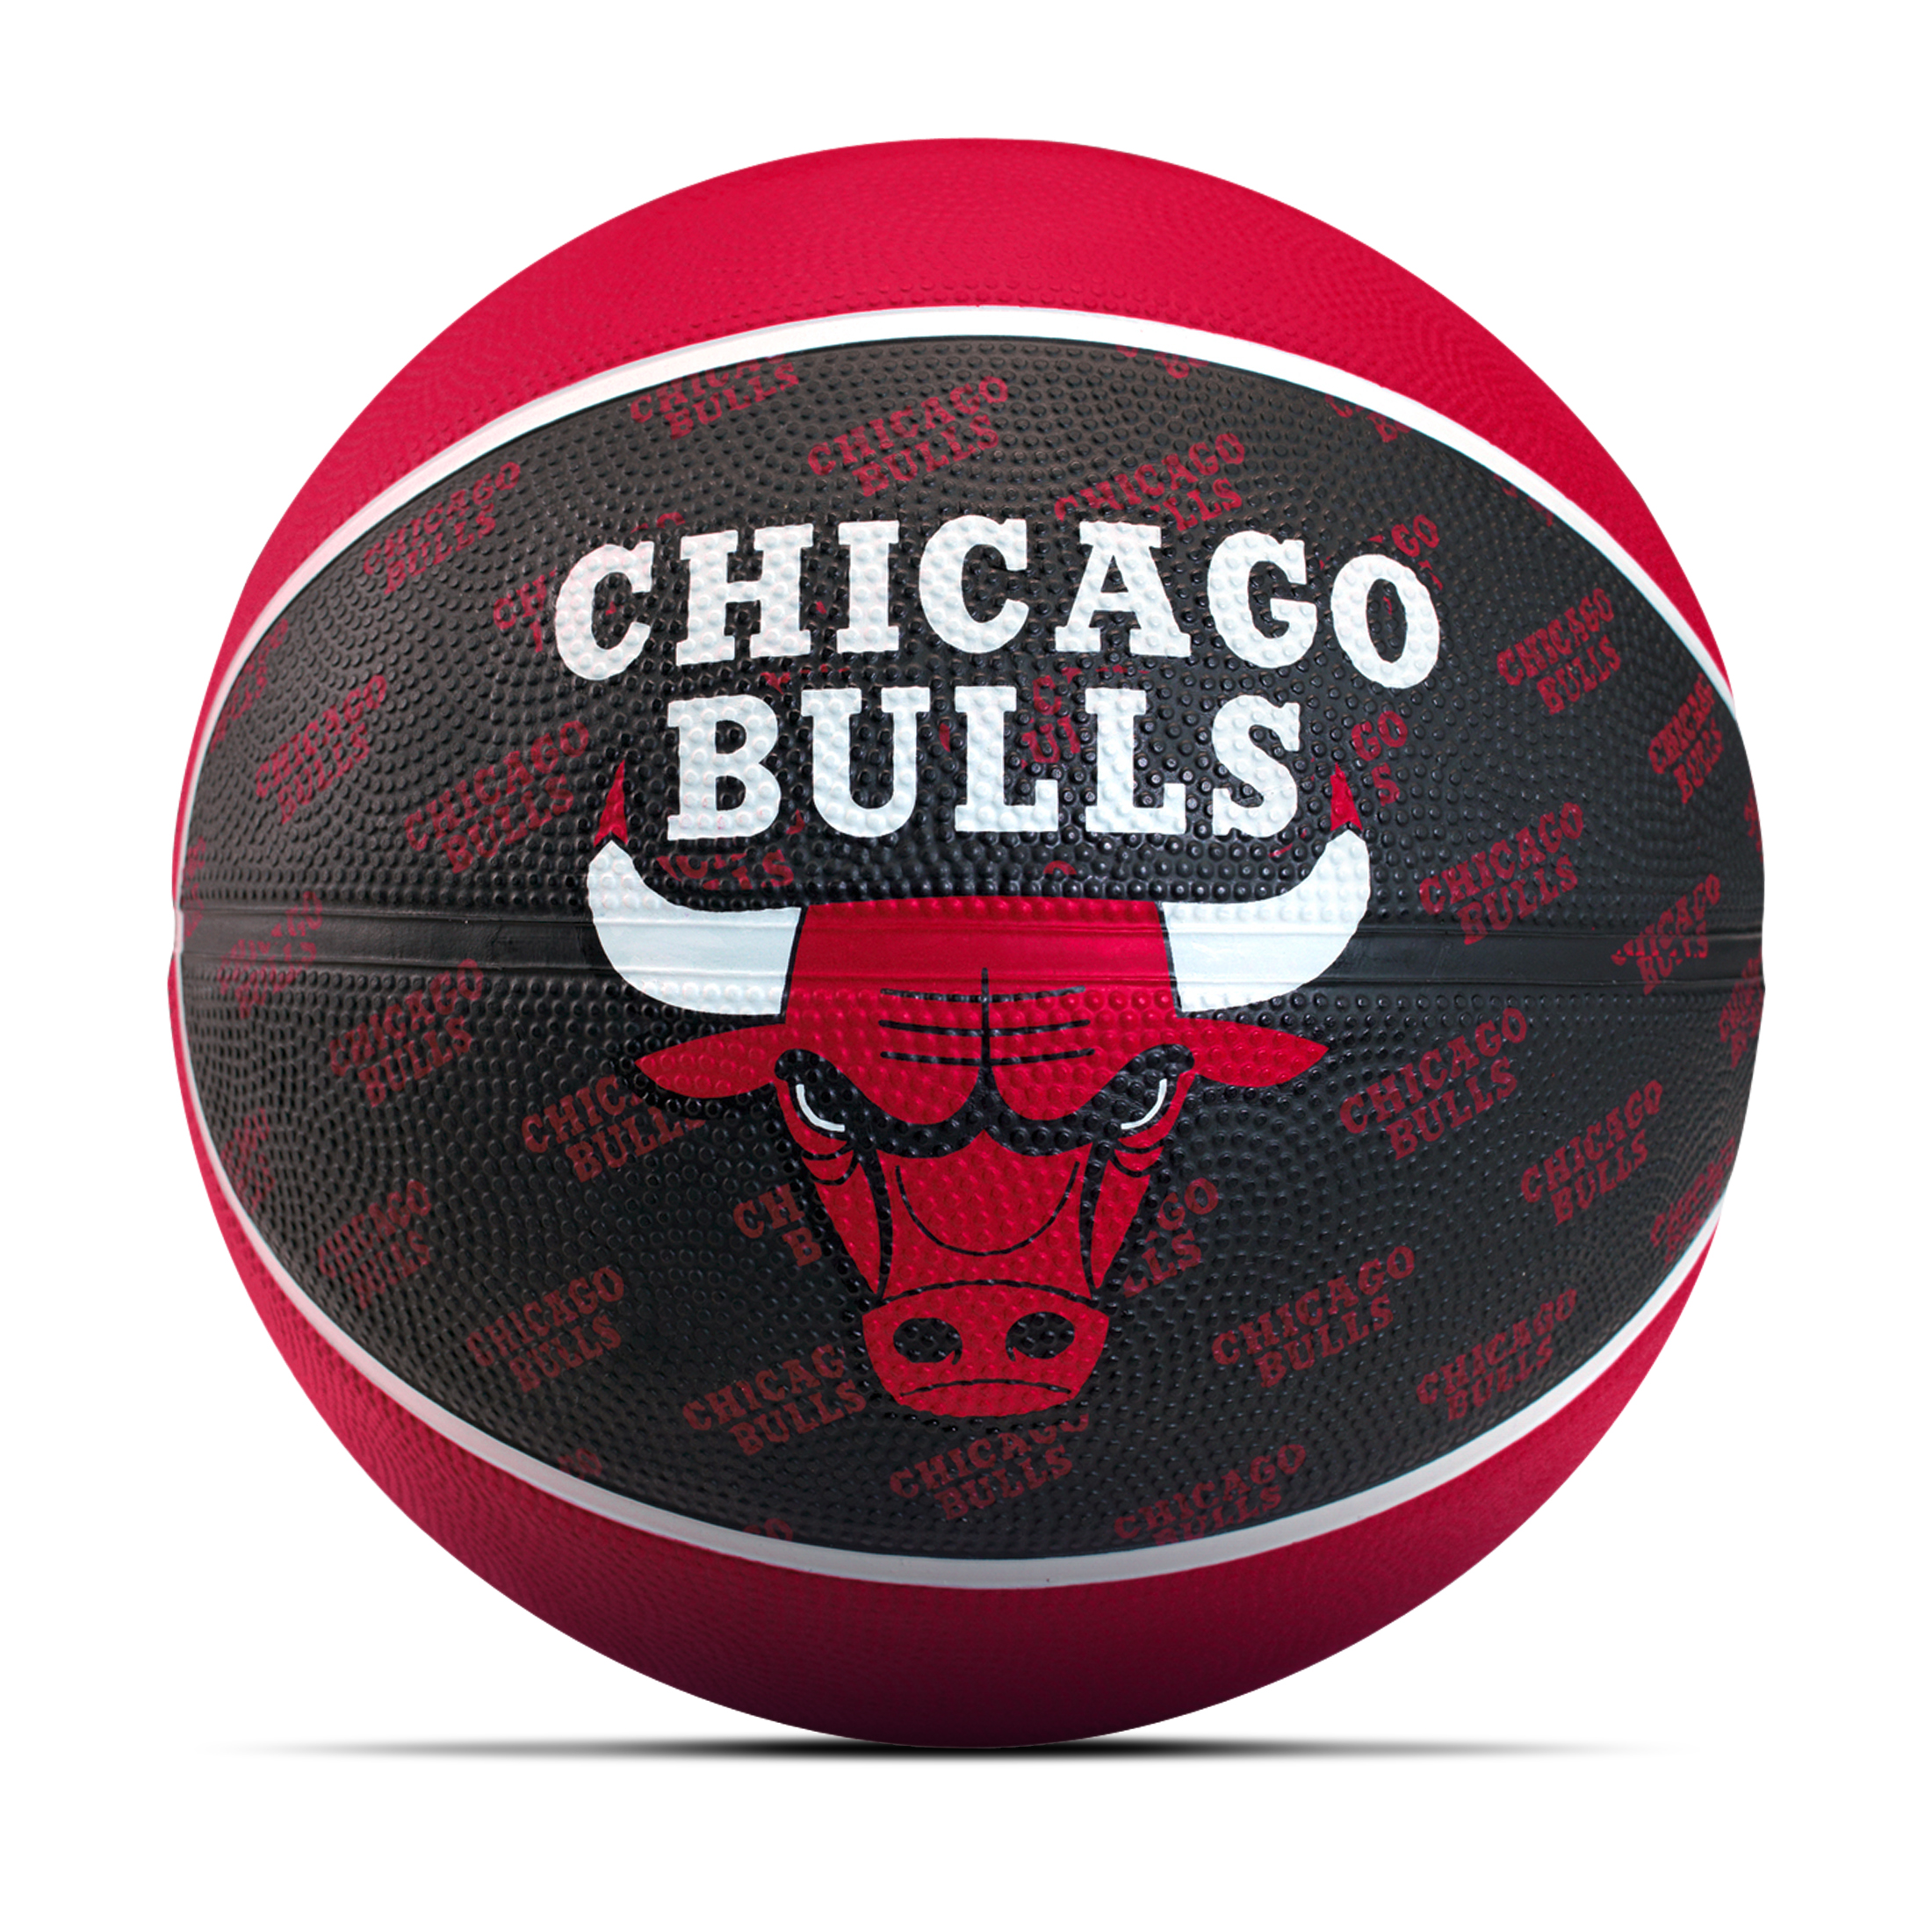 Spalding NBA Chicago Bulls Team Basketball - Size 7